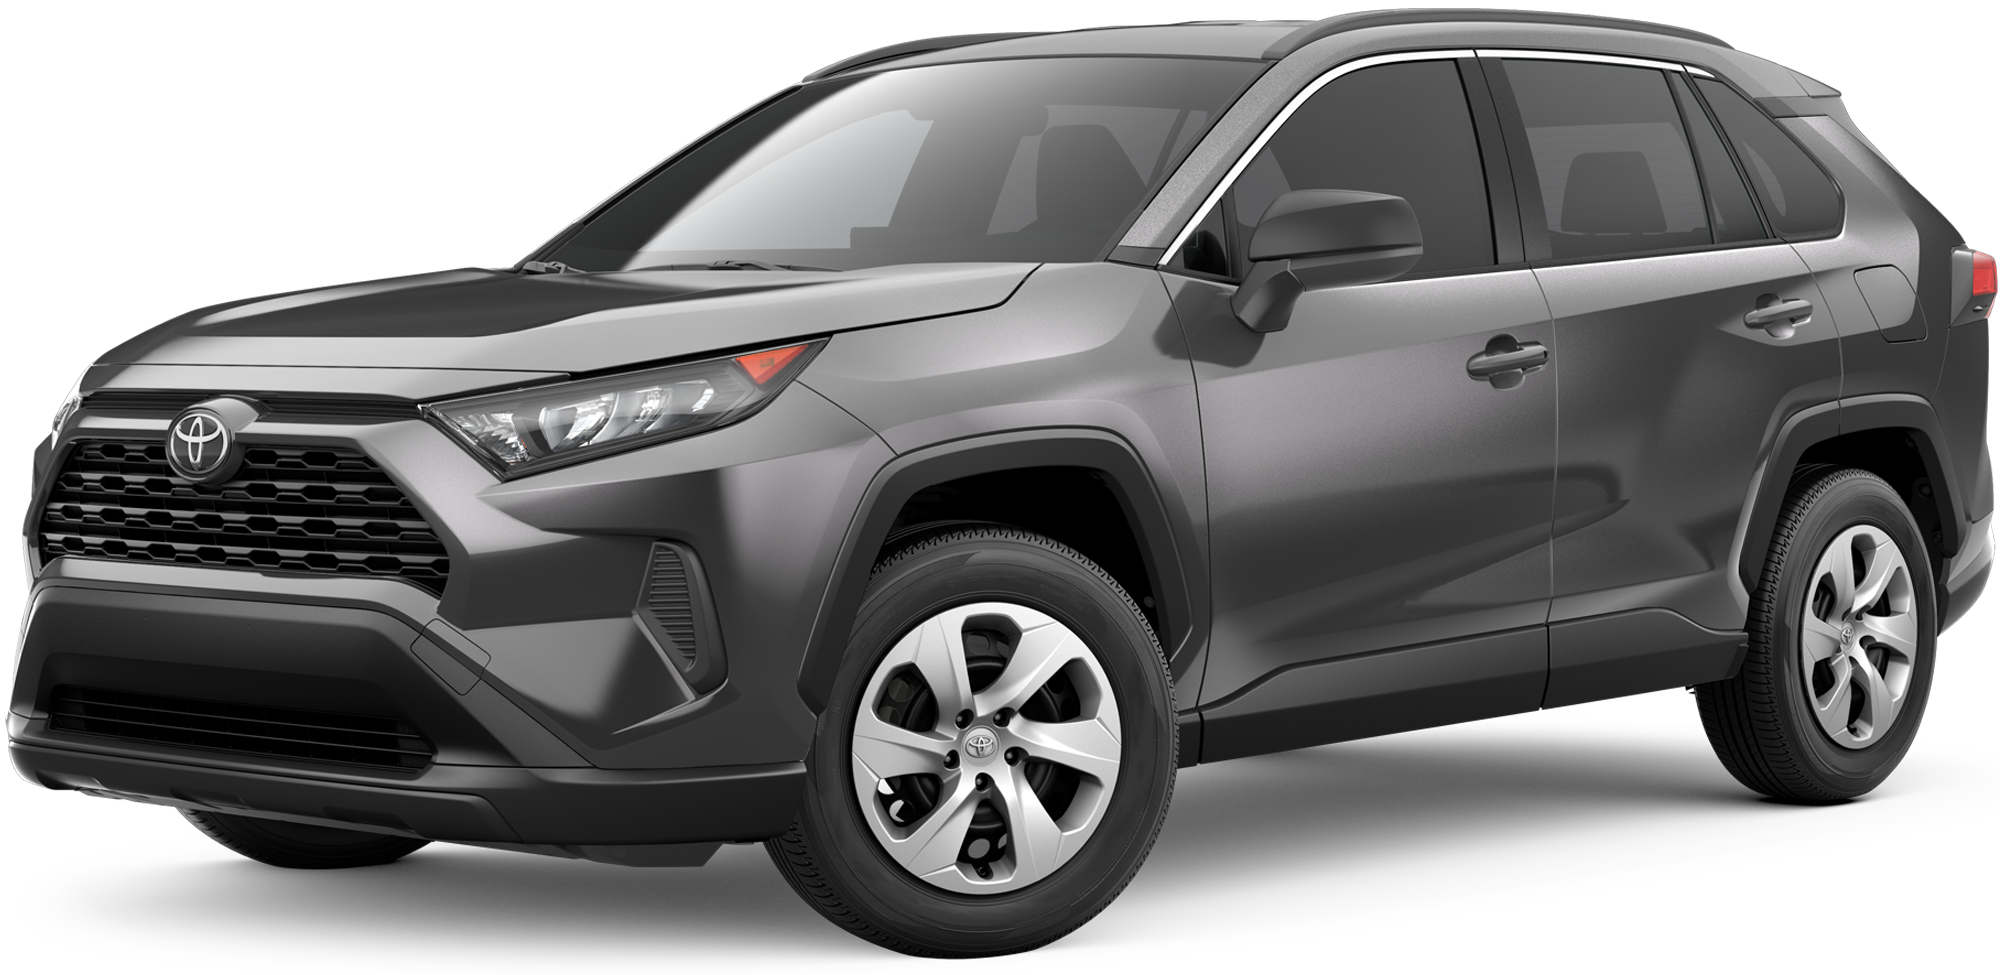 Fred Anderson Toyota Raleigh Nc >> 2019 Toyota RAV4 Specials & Offers in Raleigh NC